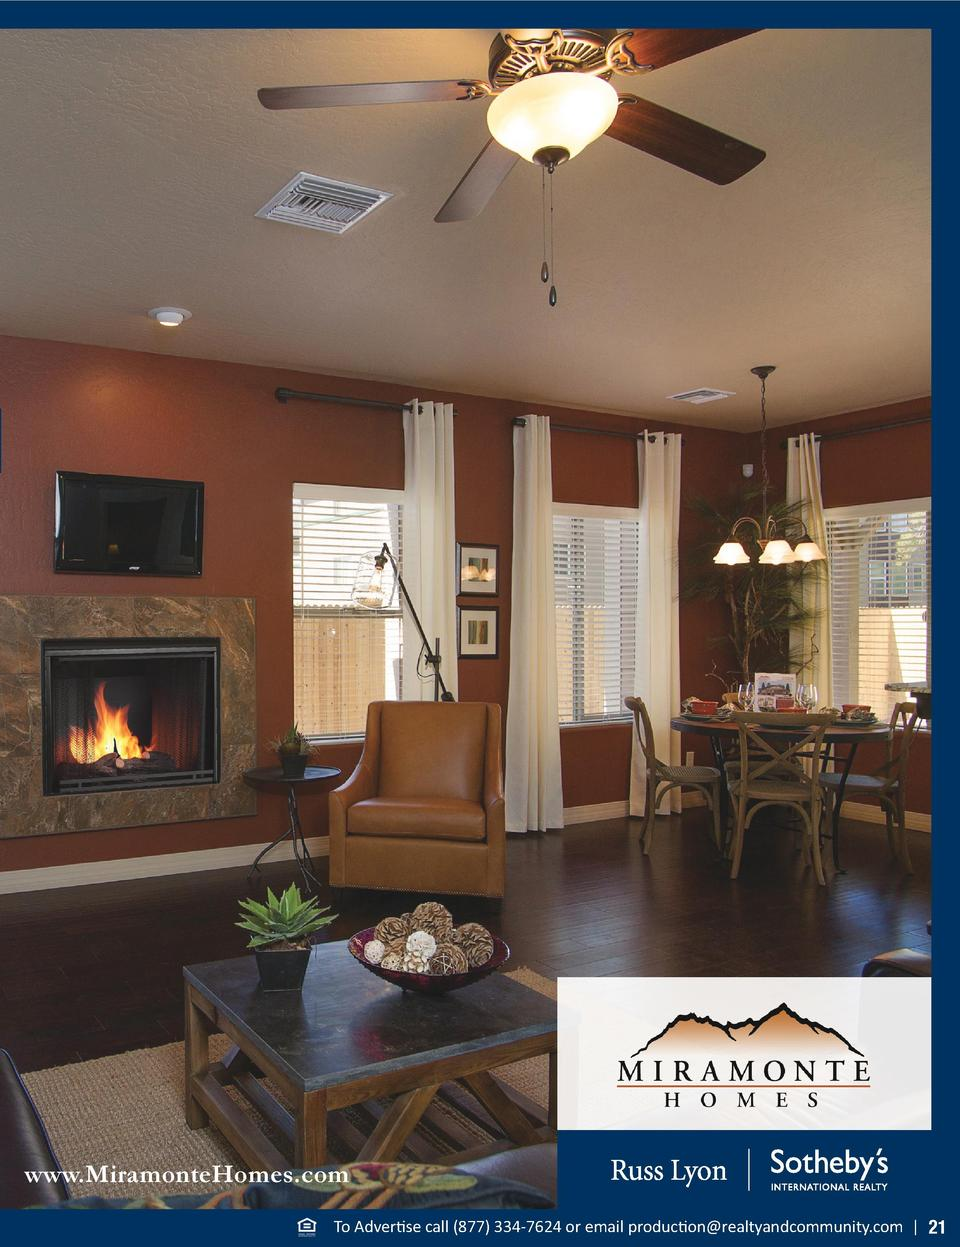 www.MiramonteHomes.com To Advertise call  877  334-7624 or email production realtyandcommunity.com   21